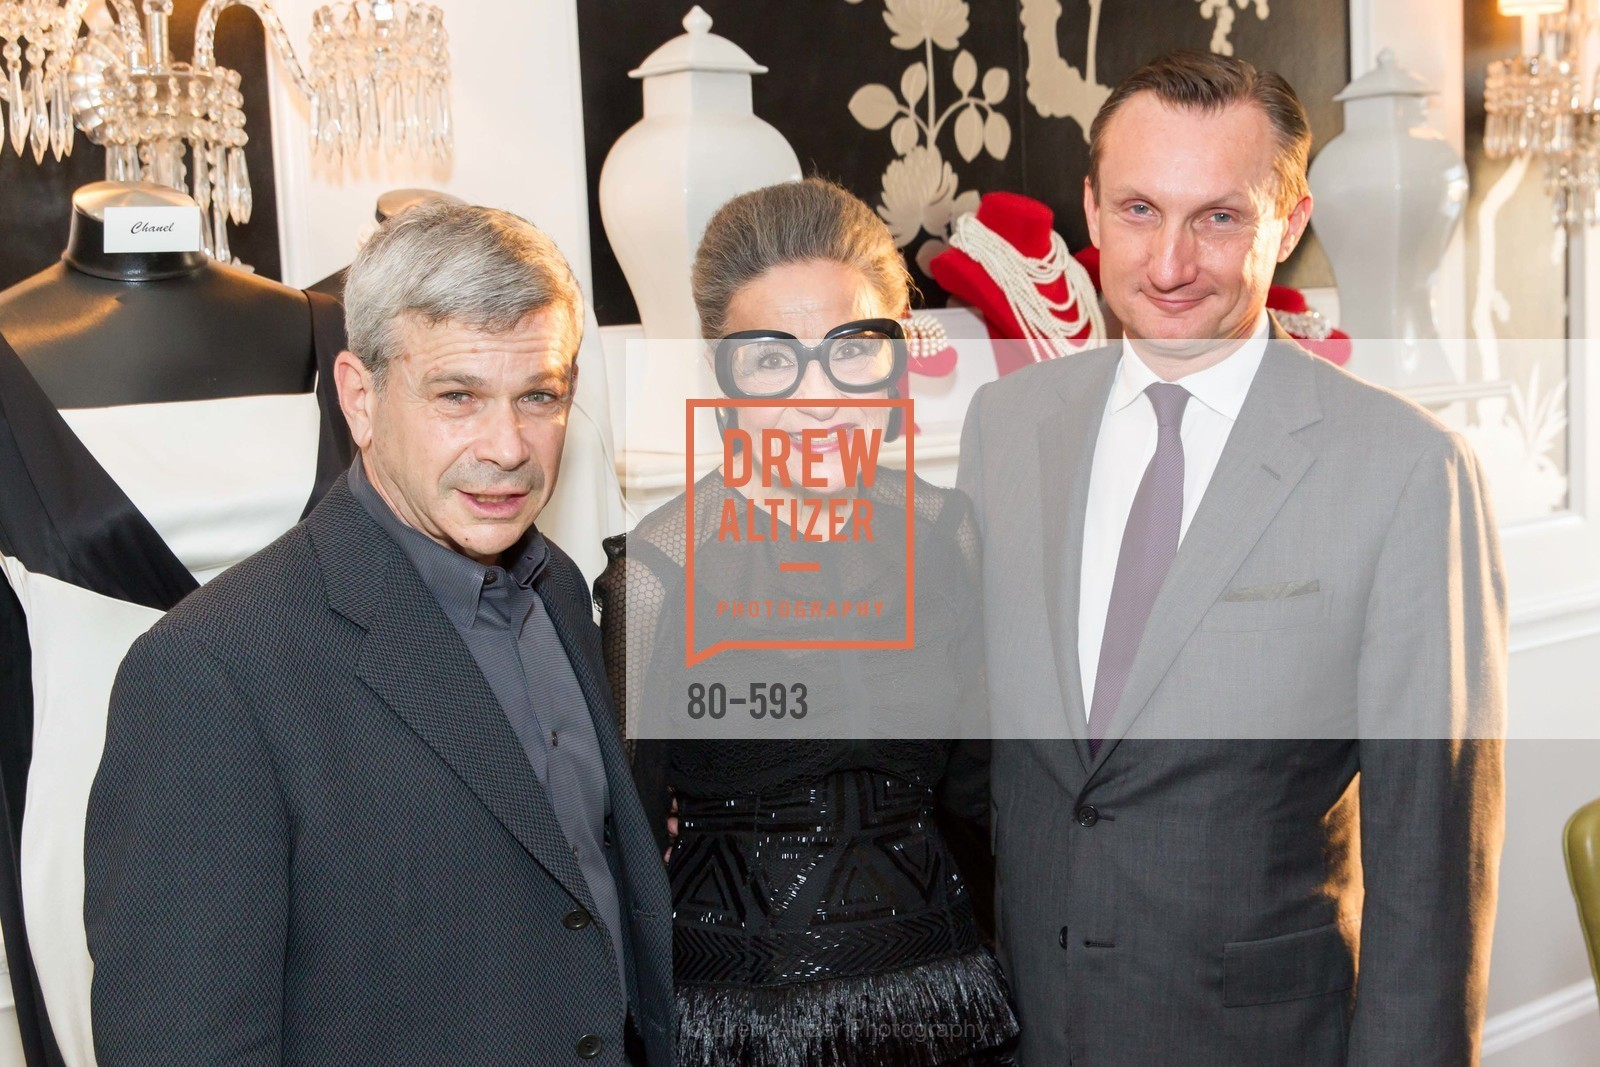 Richard Beleson, Joy Venturini Bianchi, Giles Marsden, COUTURE FOR A CAUSE, US, October 5th, 2014,Drew Altizer, Drew Altizer Photography, full-service agency, private events, San Francisco photographer, photographer california